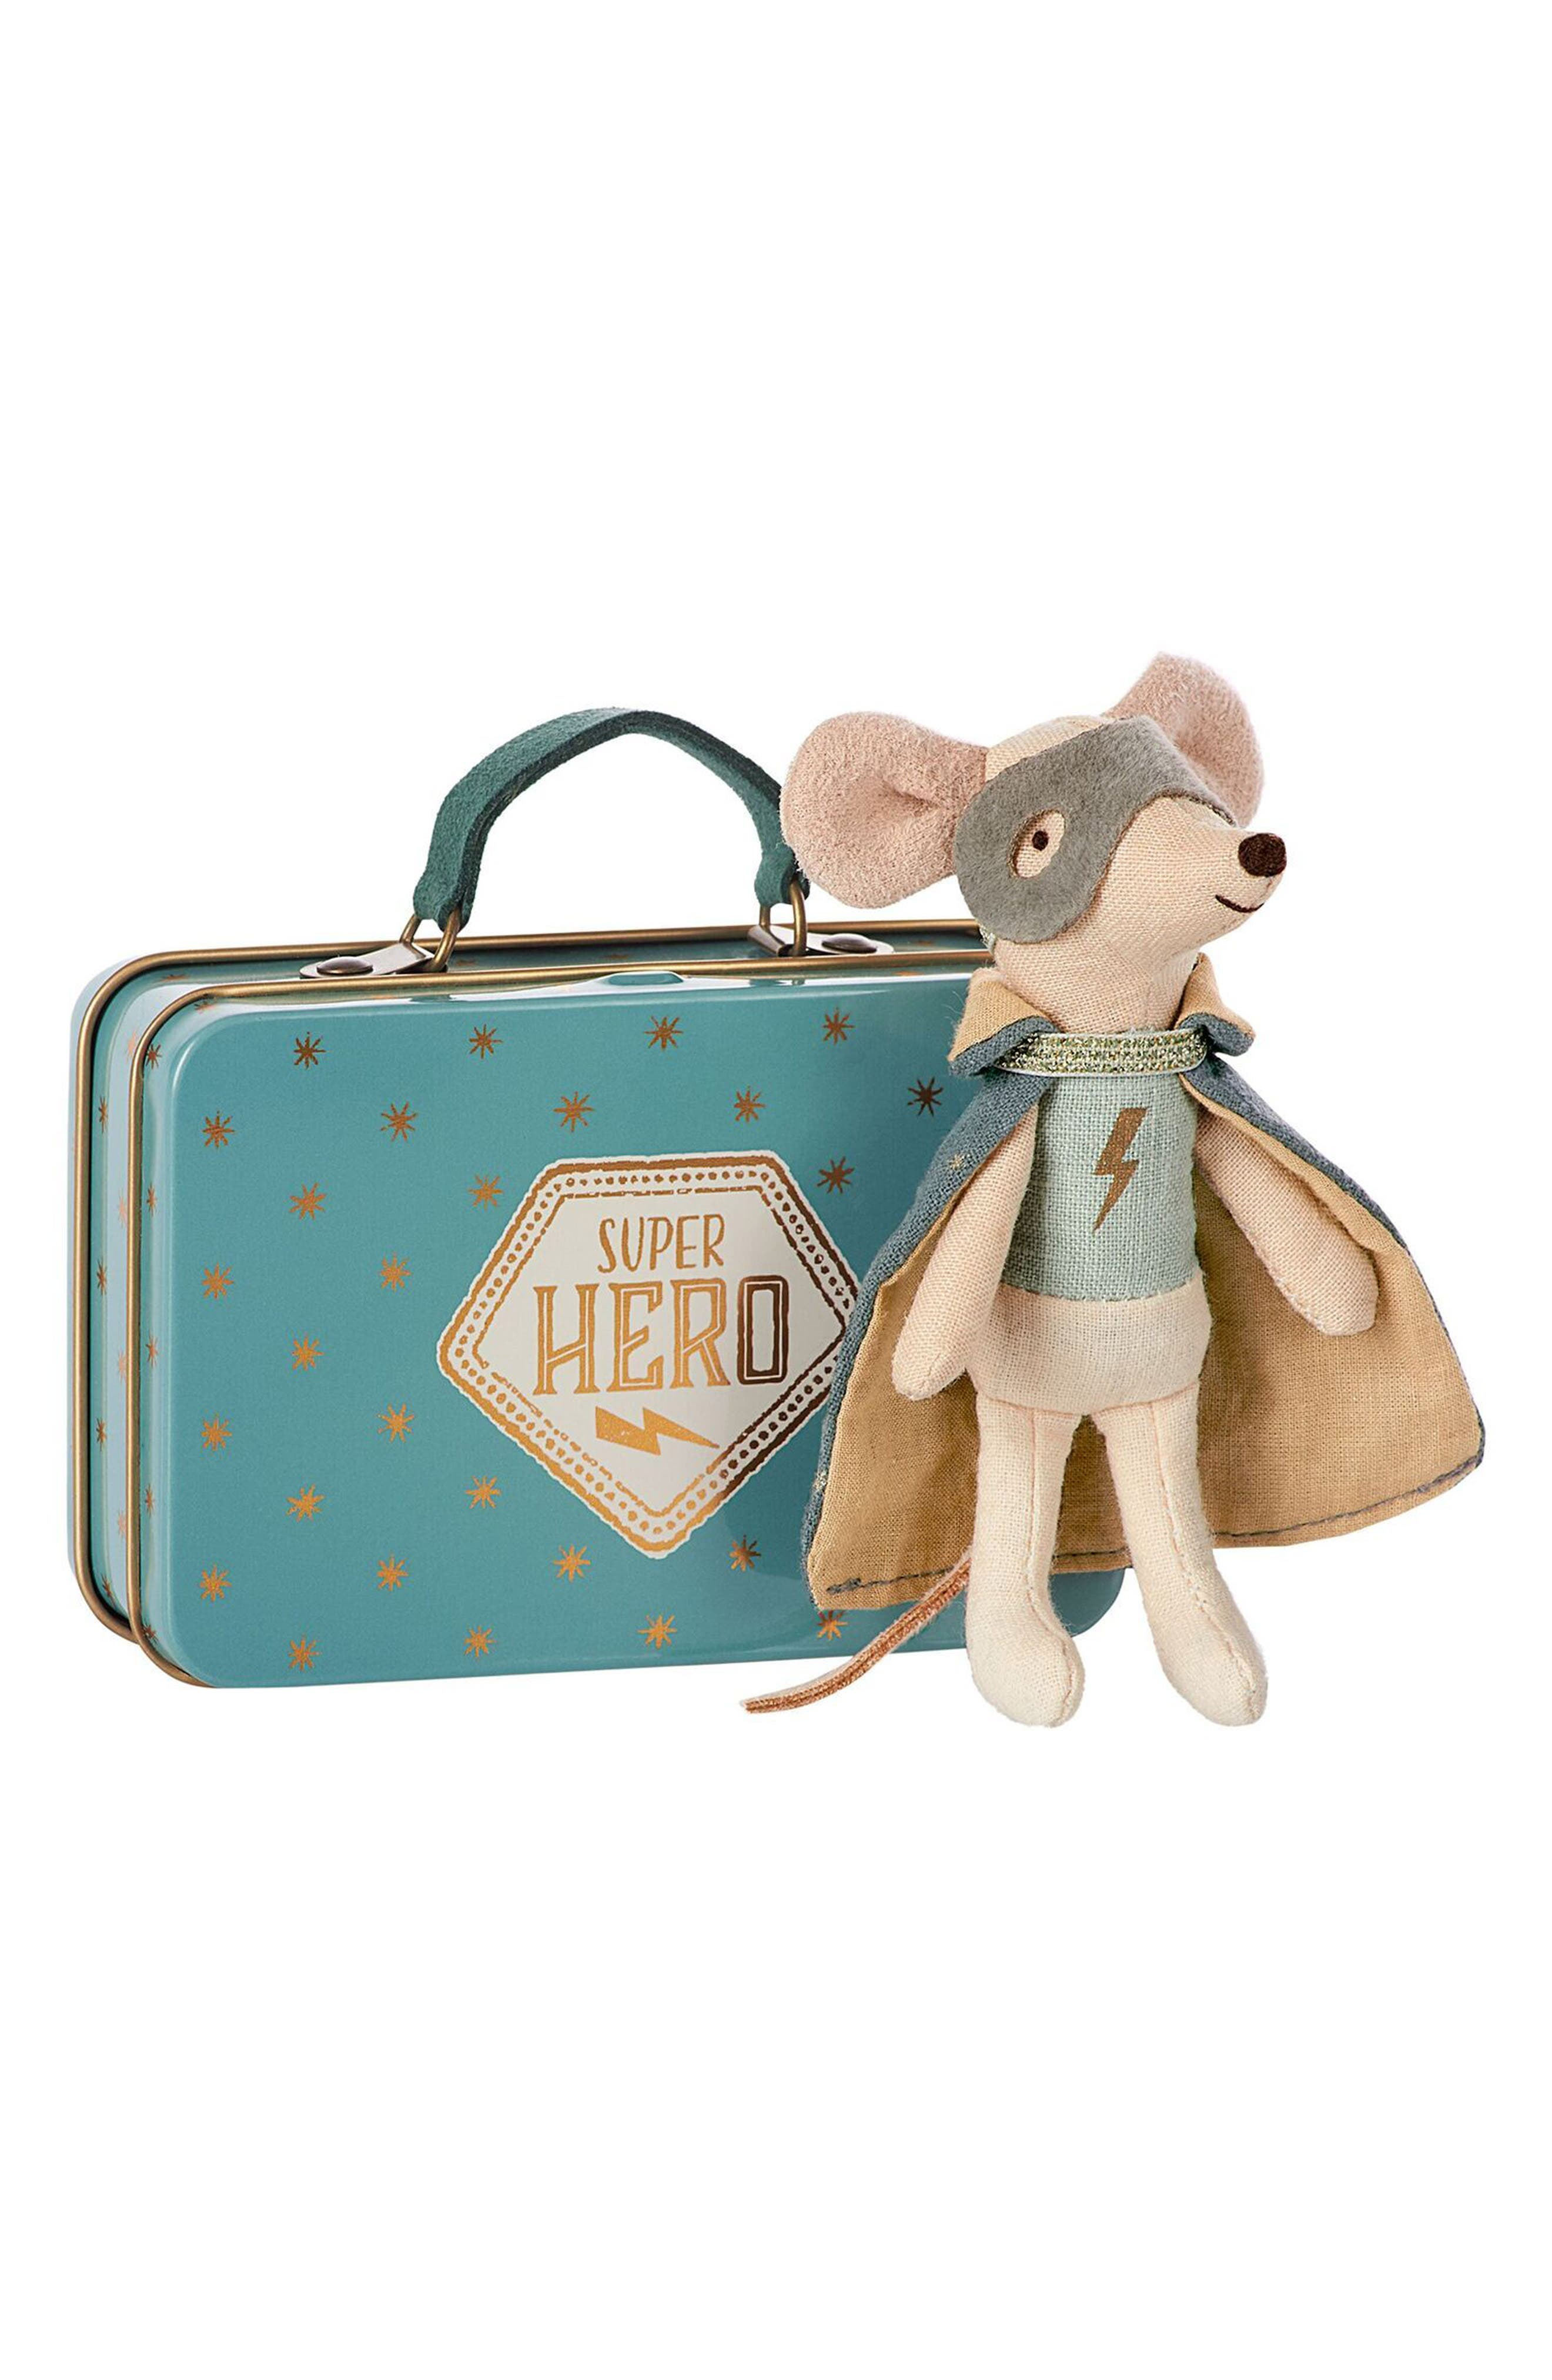 Alternate Image 1 Selected - Maileg Super Hero Toy Mouse in a Suitcase